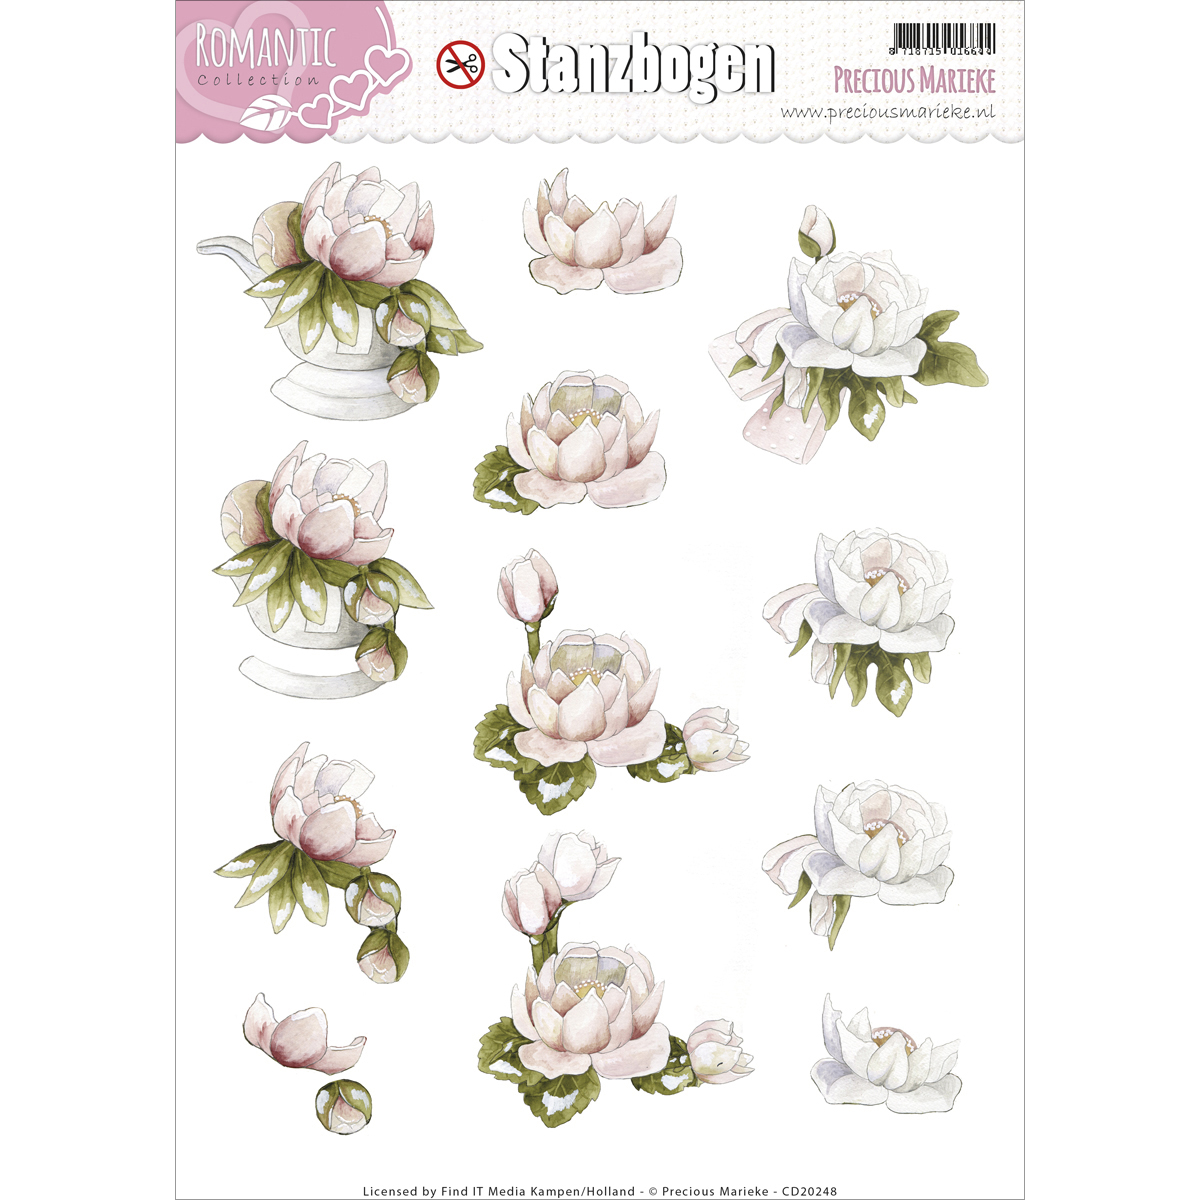 Find It Precious Marieke Romance Punchout Sheet-Flower Bowl & Corsage